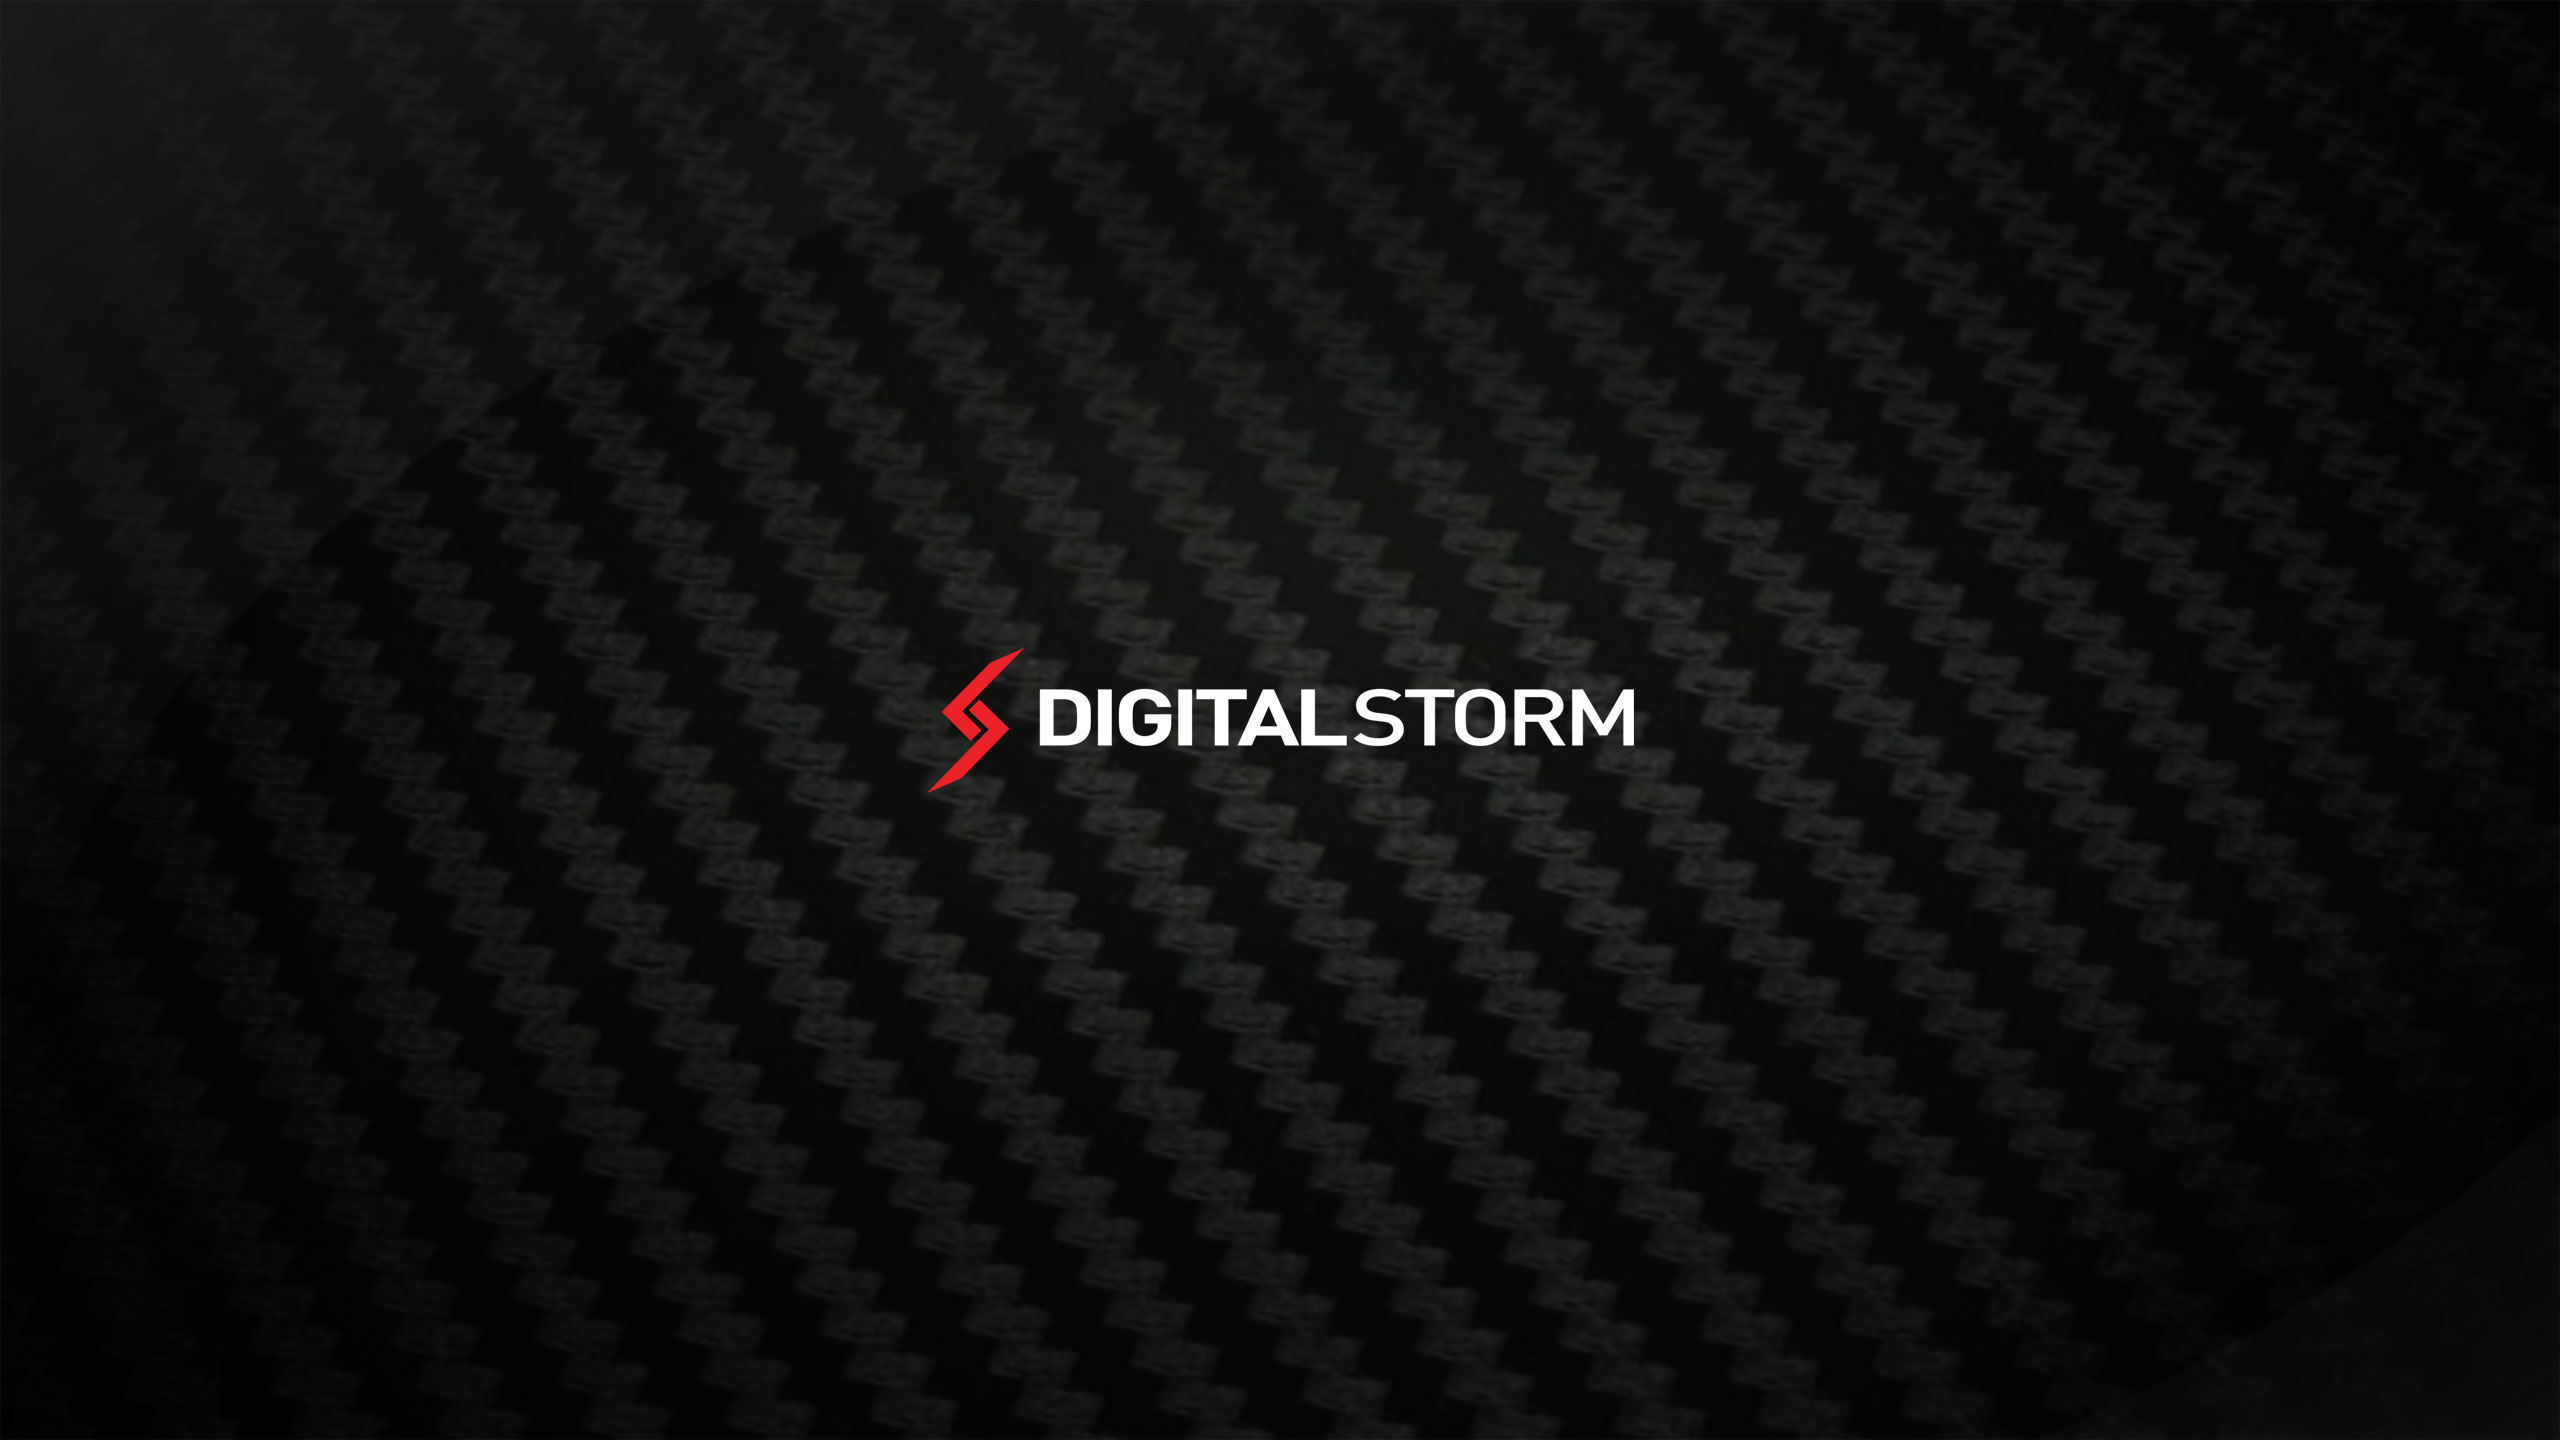 digital storm wallpapers 1920x1200 - photo #5